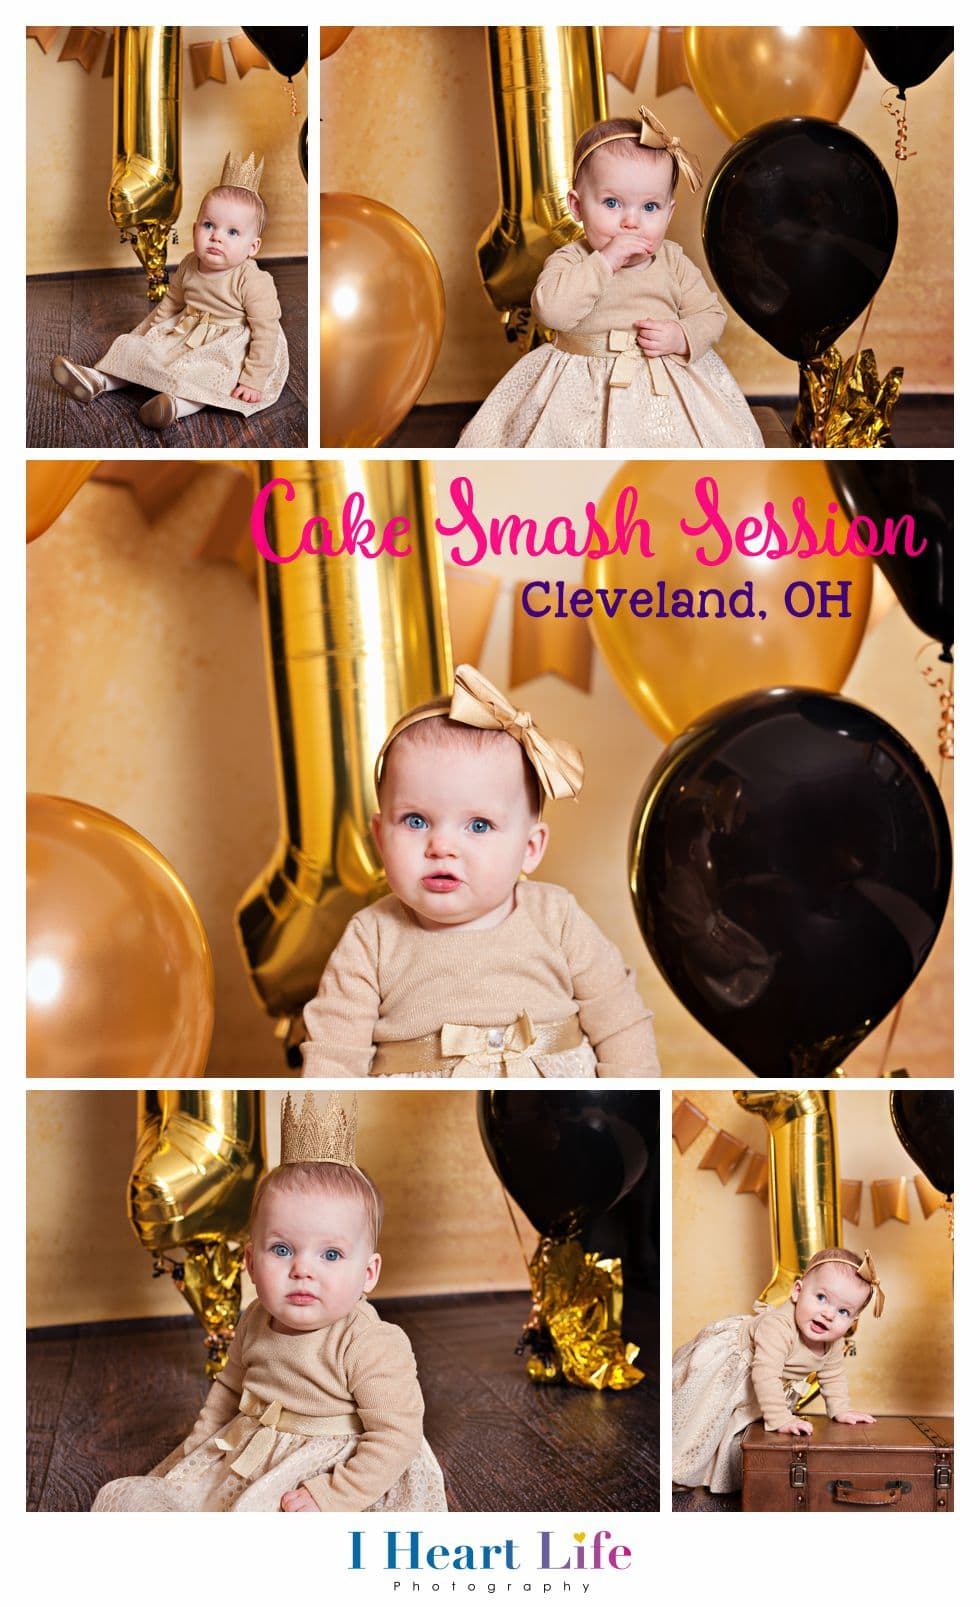 Children photo session for first birthday - Black & Gold New Year Theme